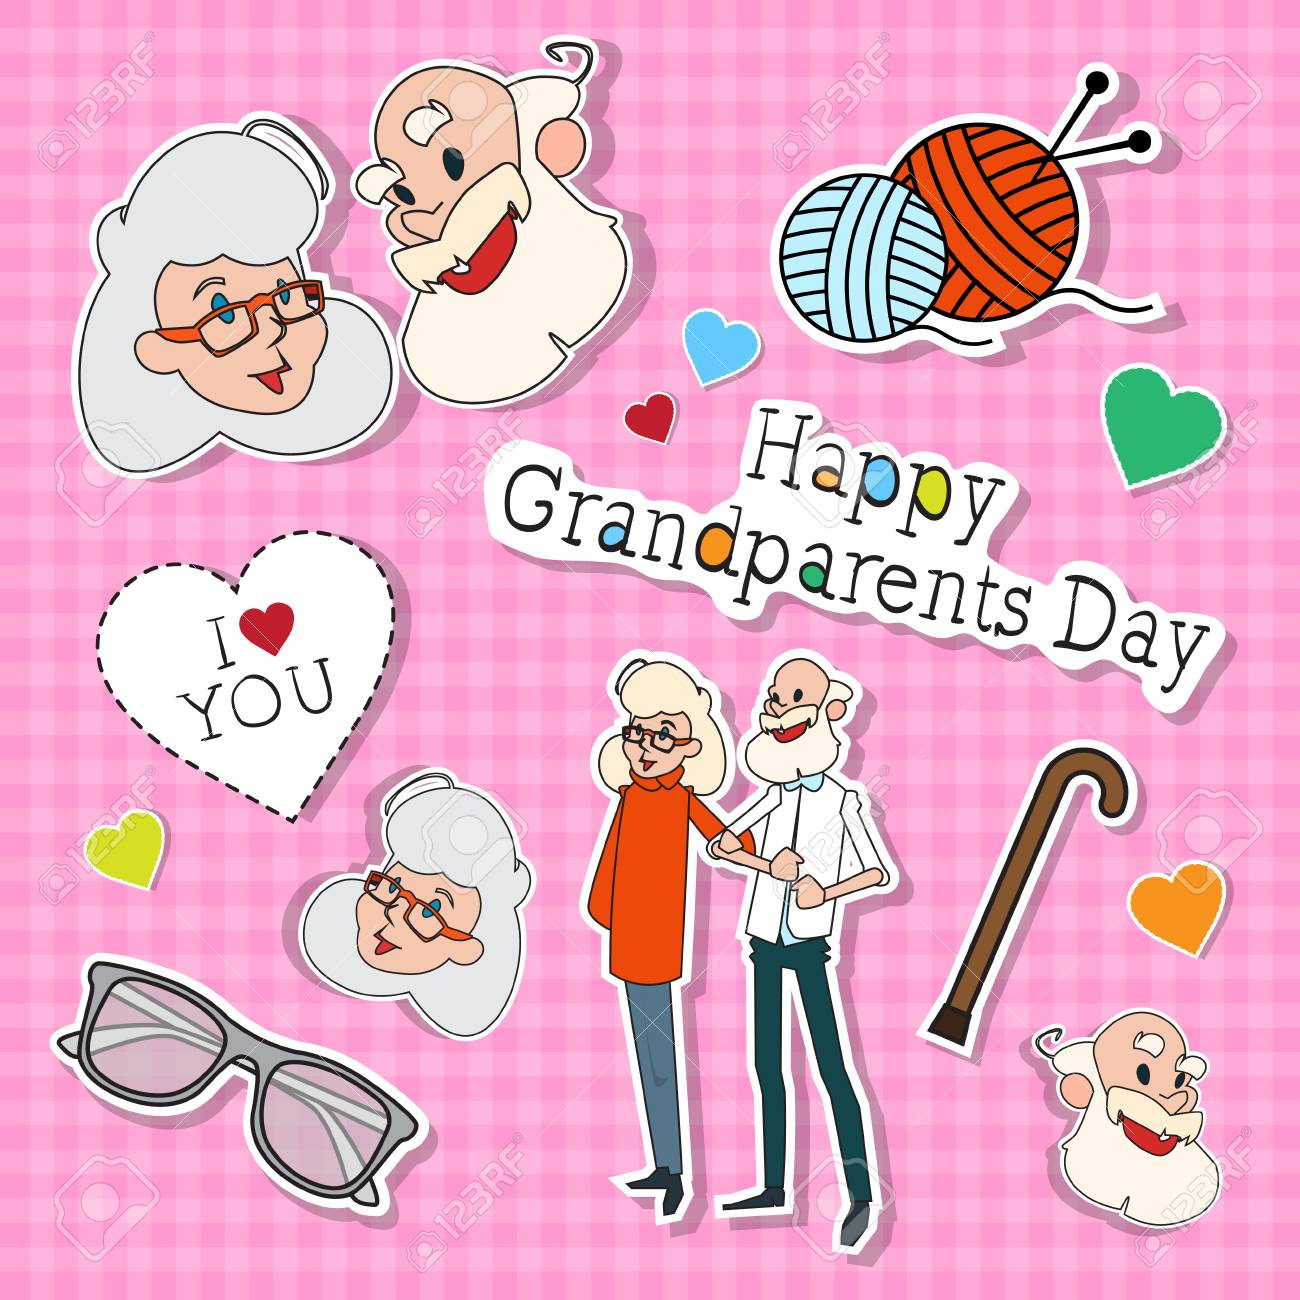 Happy Grandparents Day Greeting Card Colorful Banner Pop Art